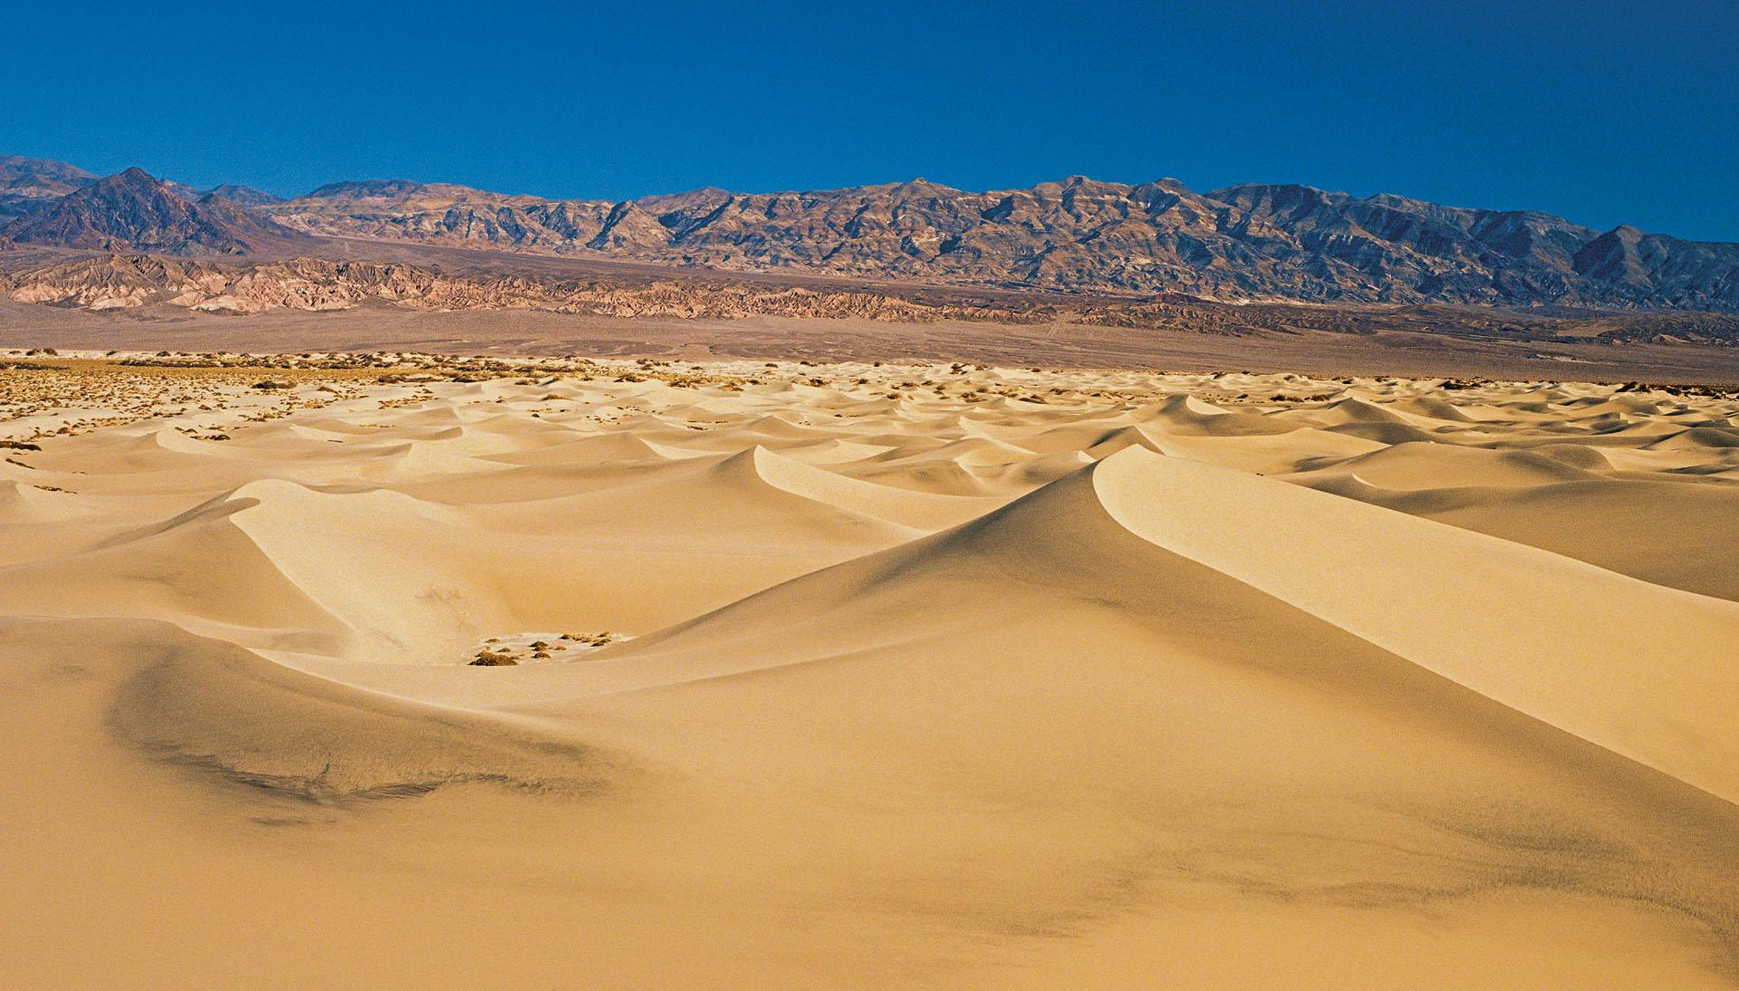 big_death_valley_100x60_20101105_121131.